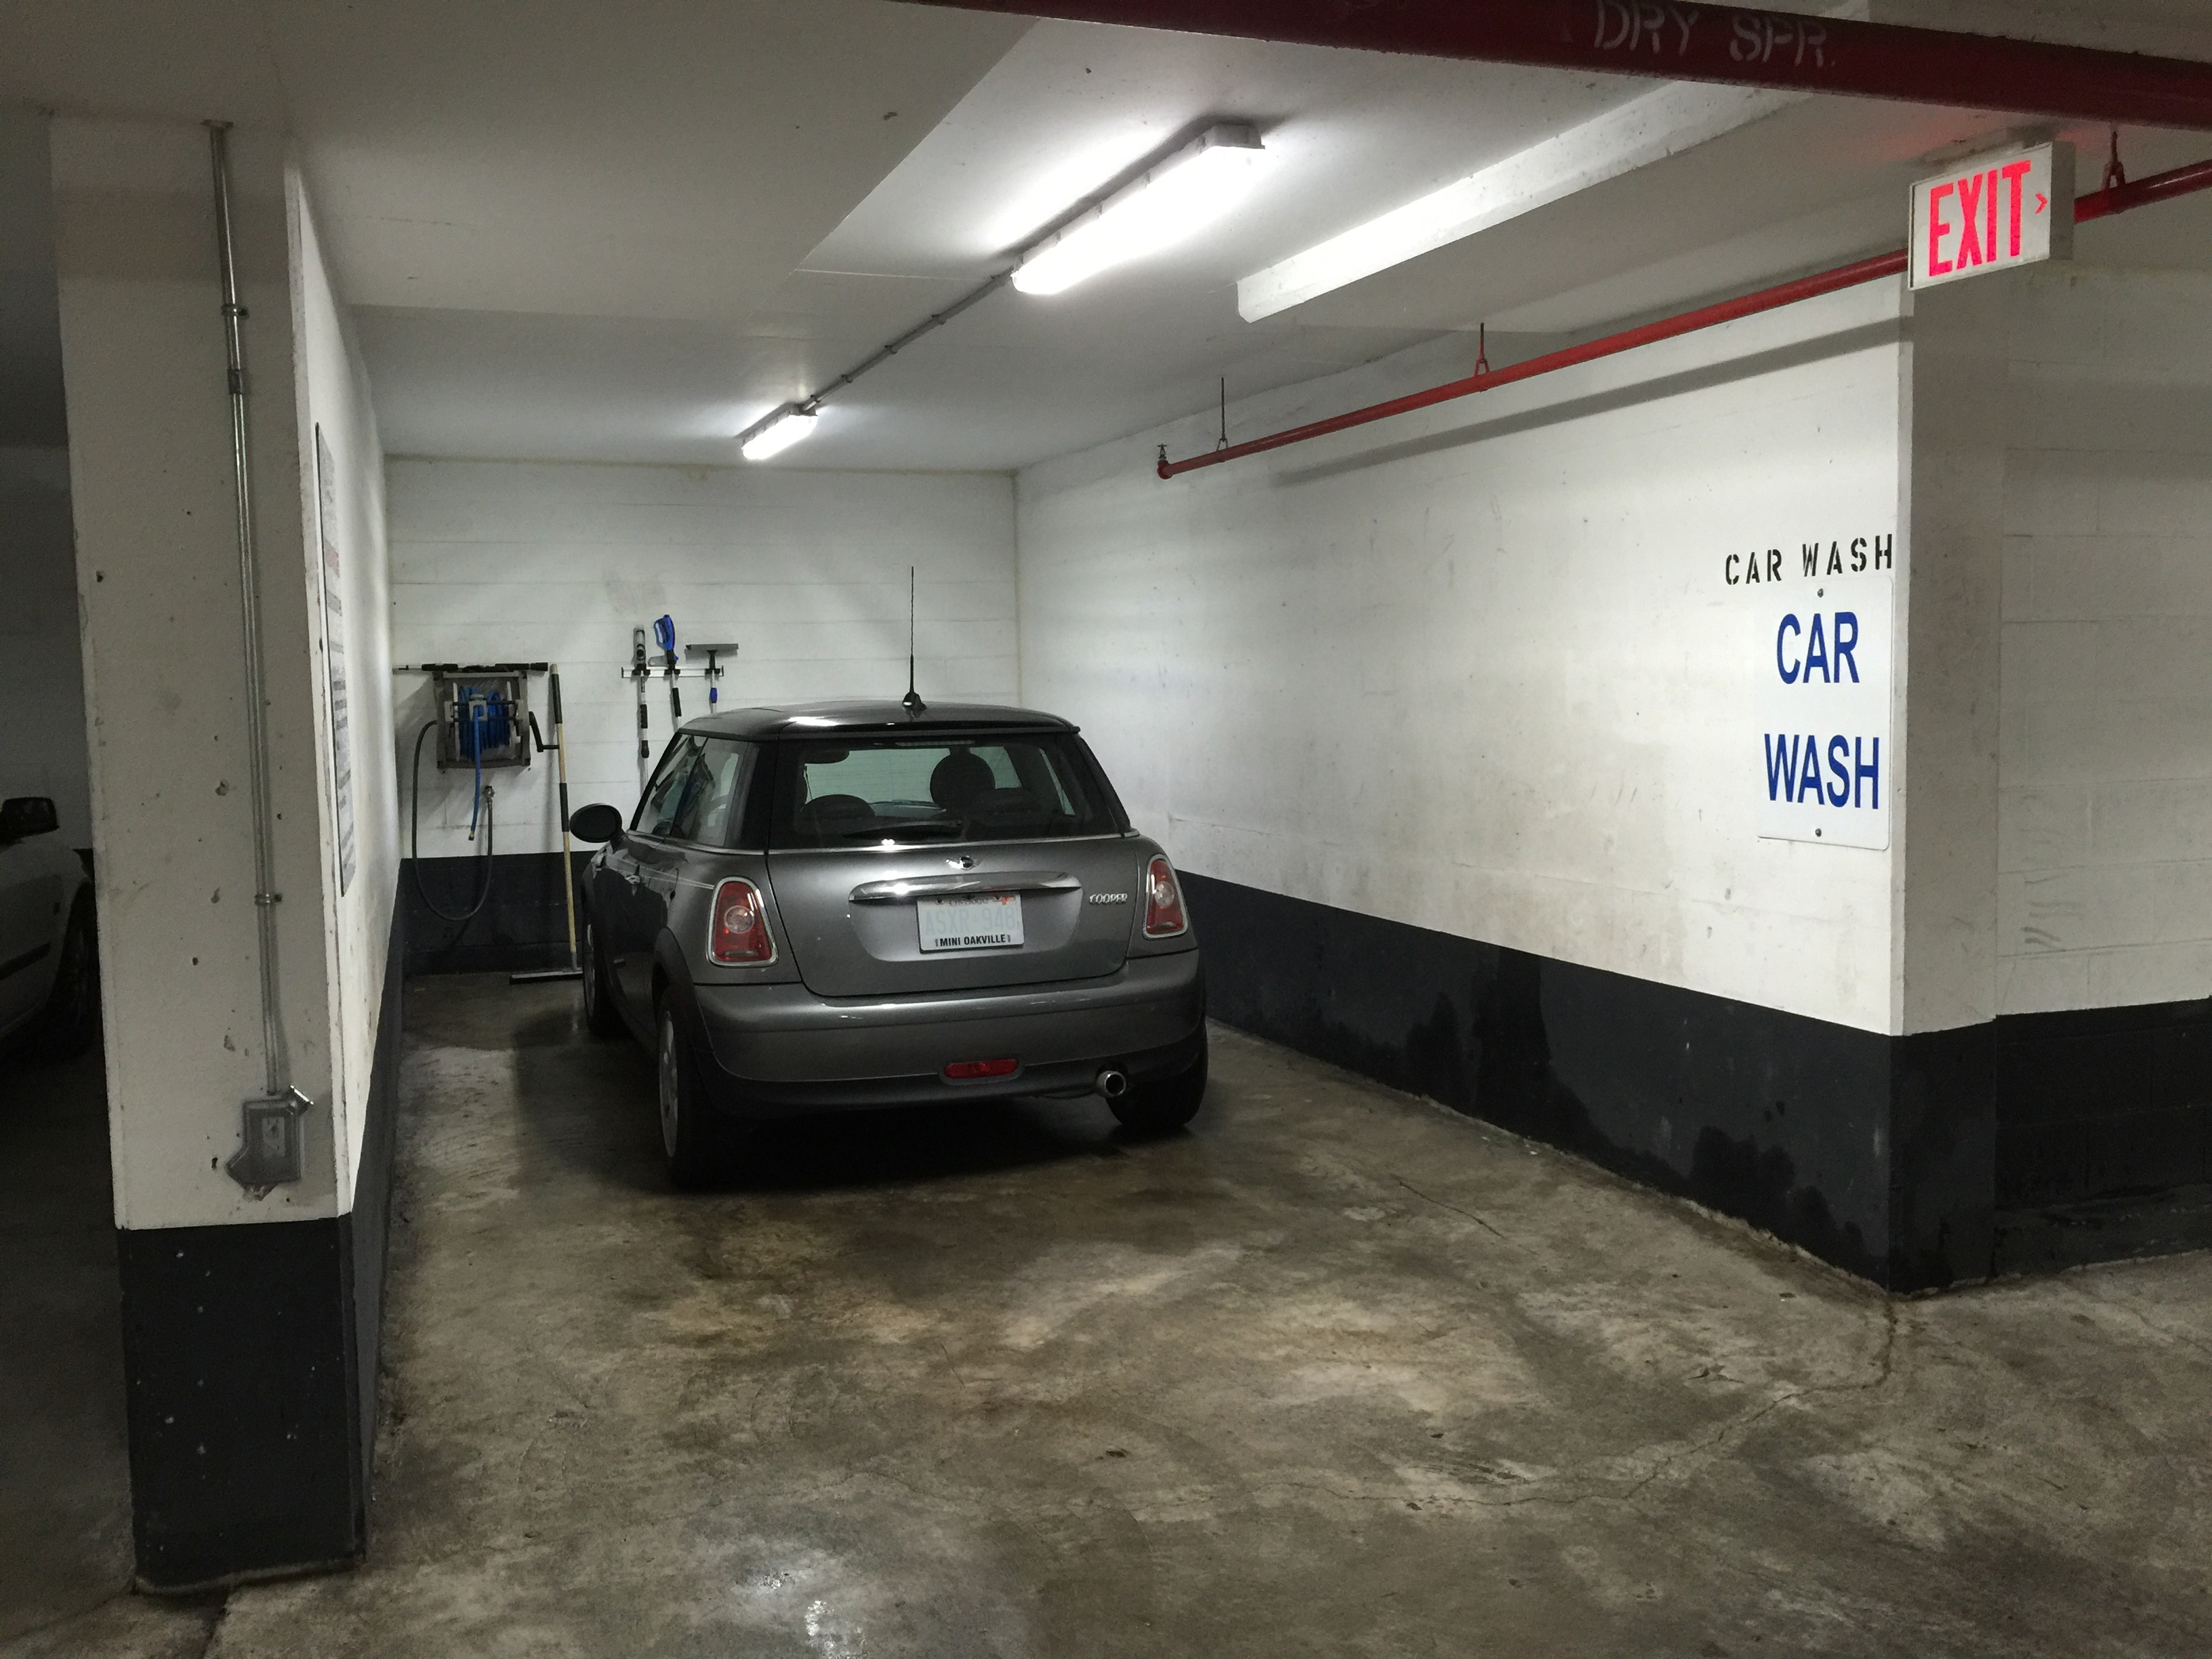 Car wash bay stonebrook users are also asked to not dry their cars in the wash bay if another resident is waiting to use it rubansaba